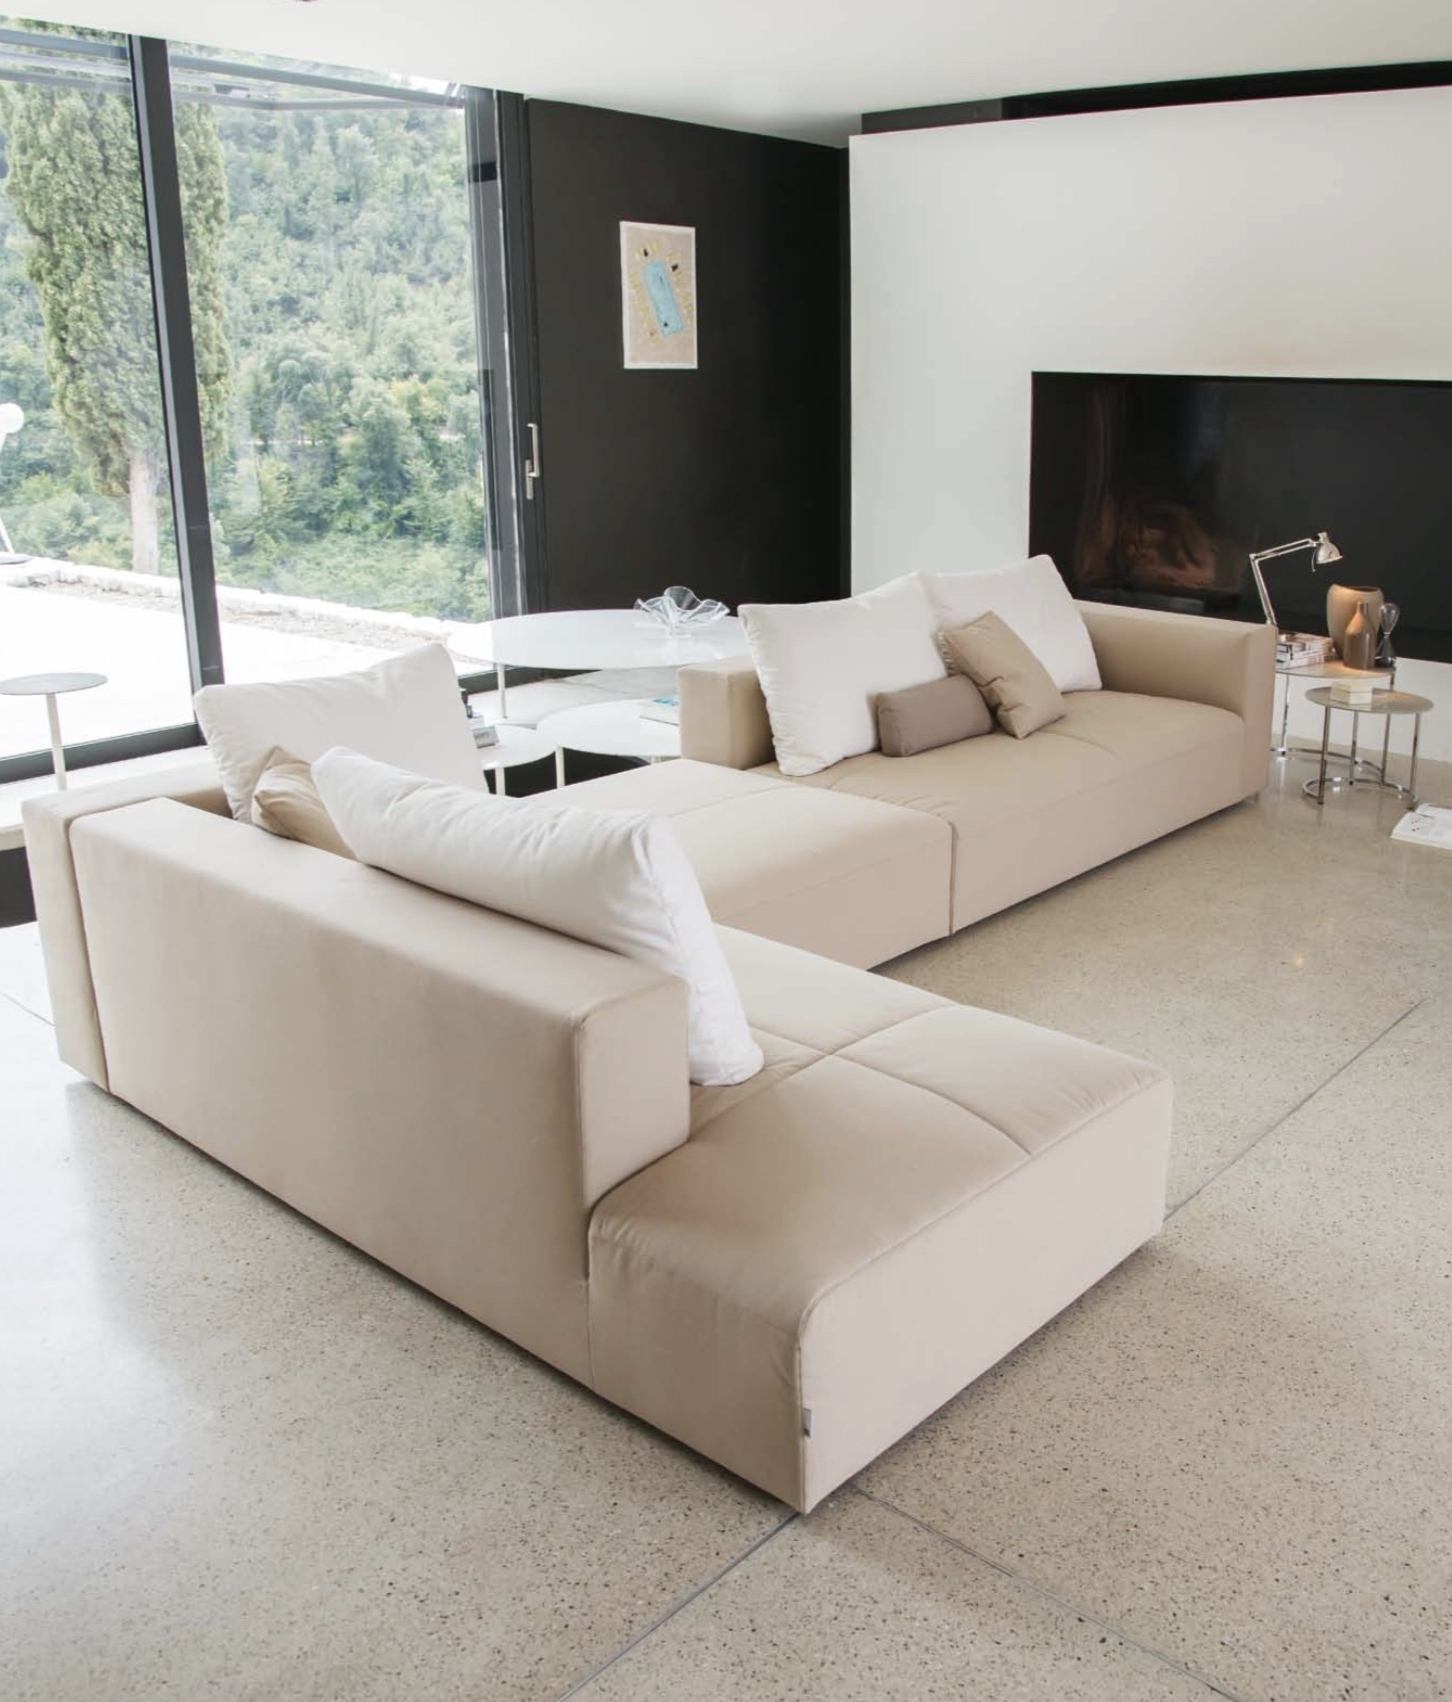 Cute Modern Sectional Sofas With Italian Sectional Sofas Intended For Latest Modern Sectional Sofas (View 14 of 20)